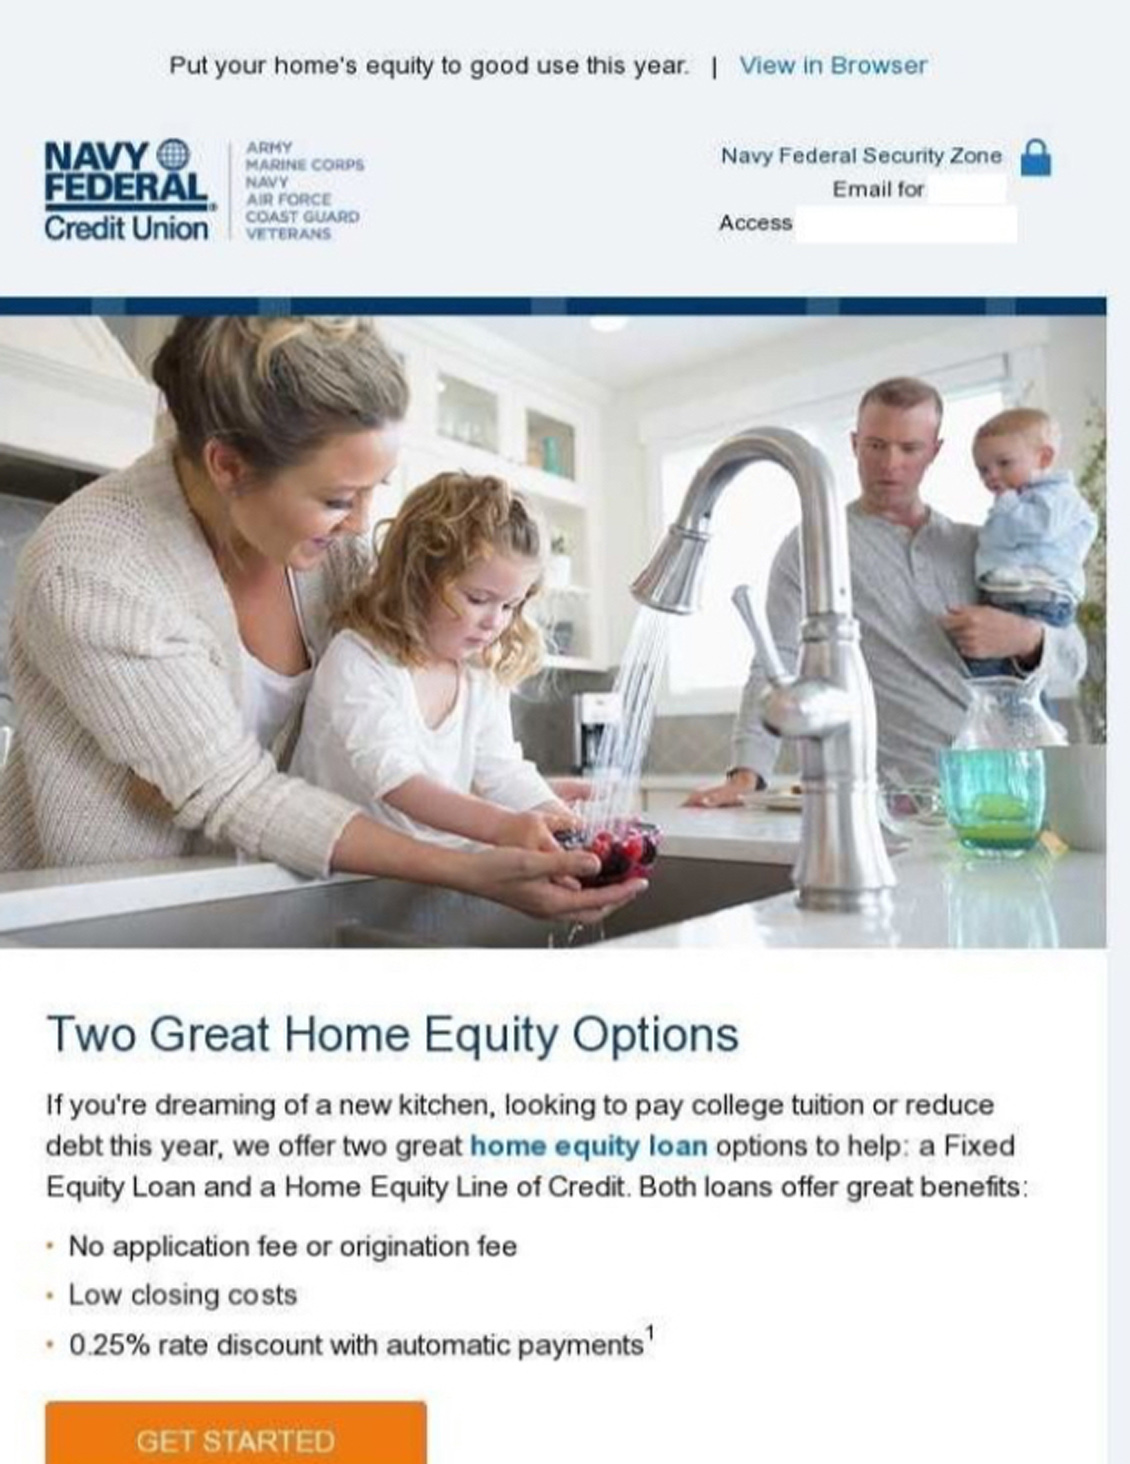 Tips To Help Financial Marketers Get More Home Equity